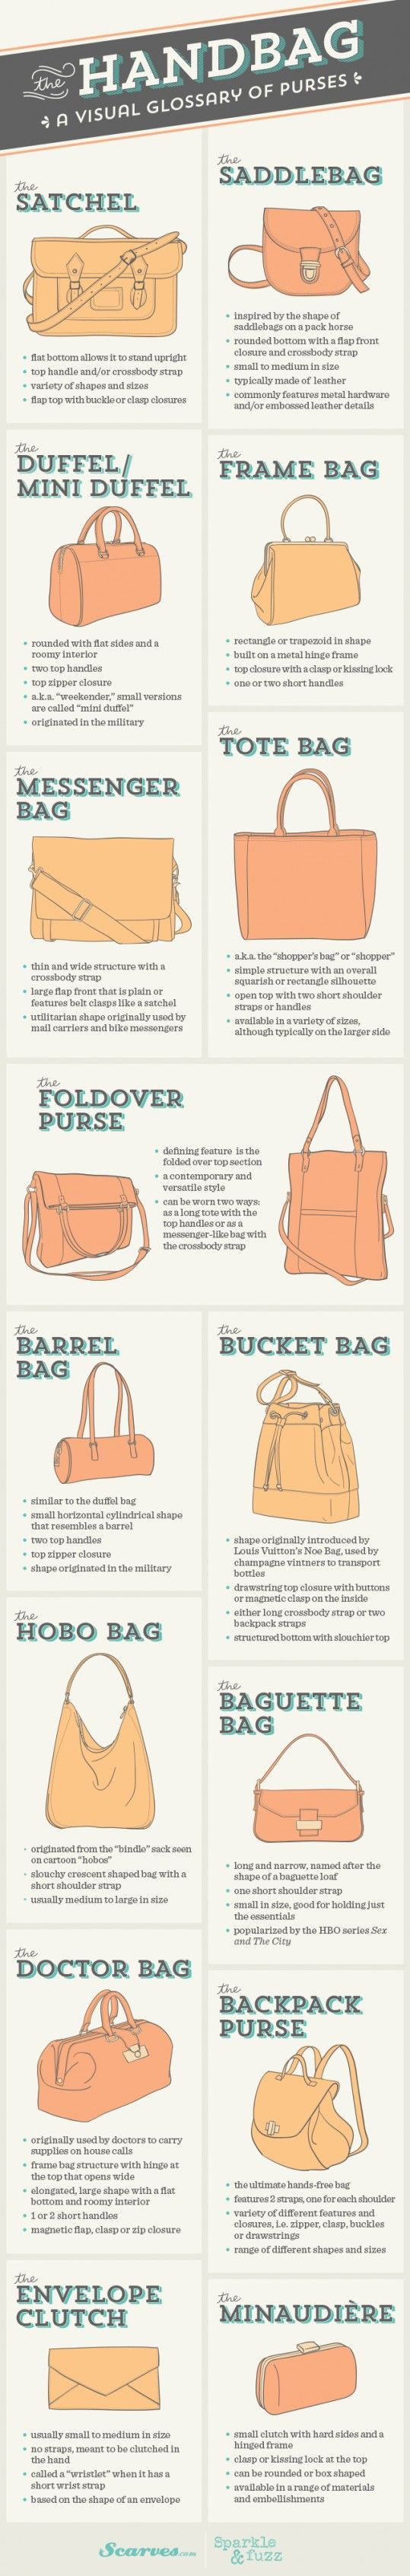 Here's a guide to your next bag purchase!  ****DANNY I like satchel, tote, and fold over bags.